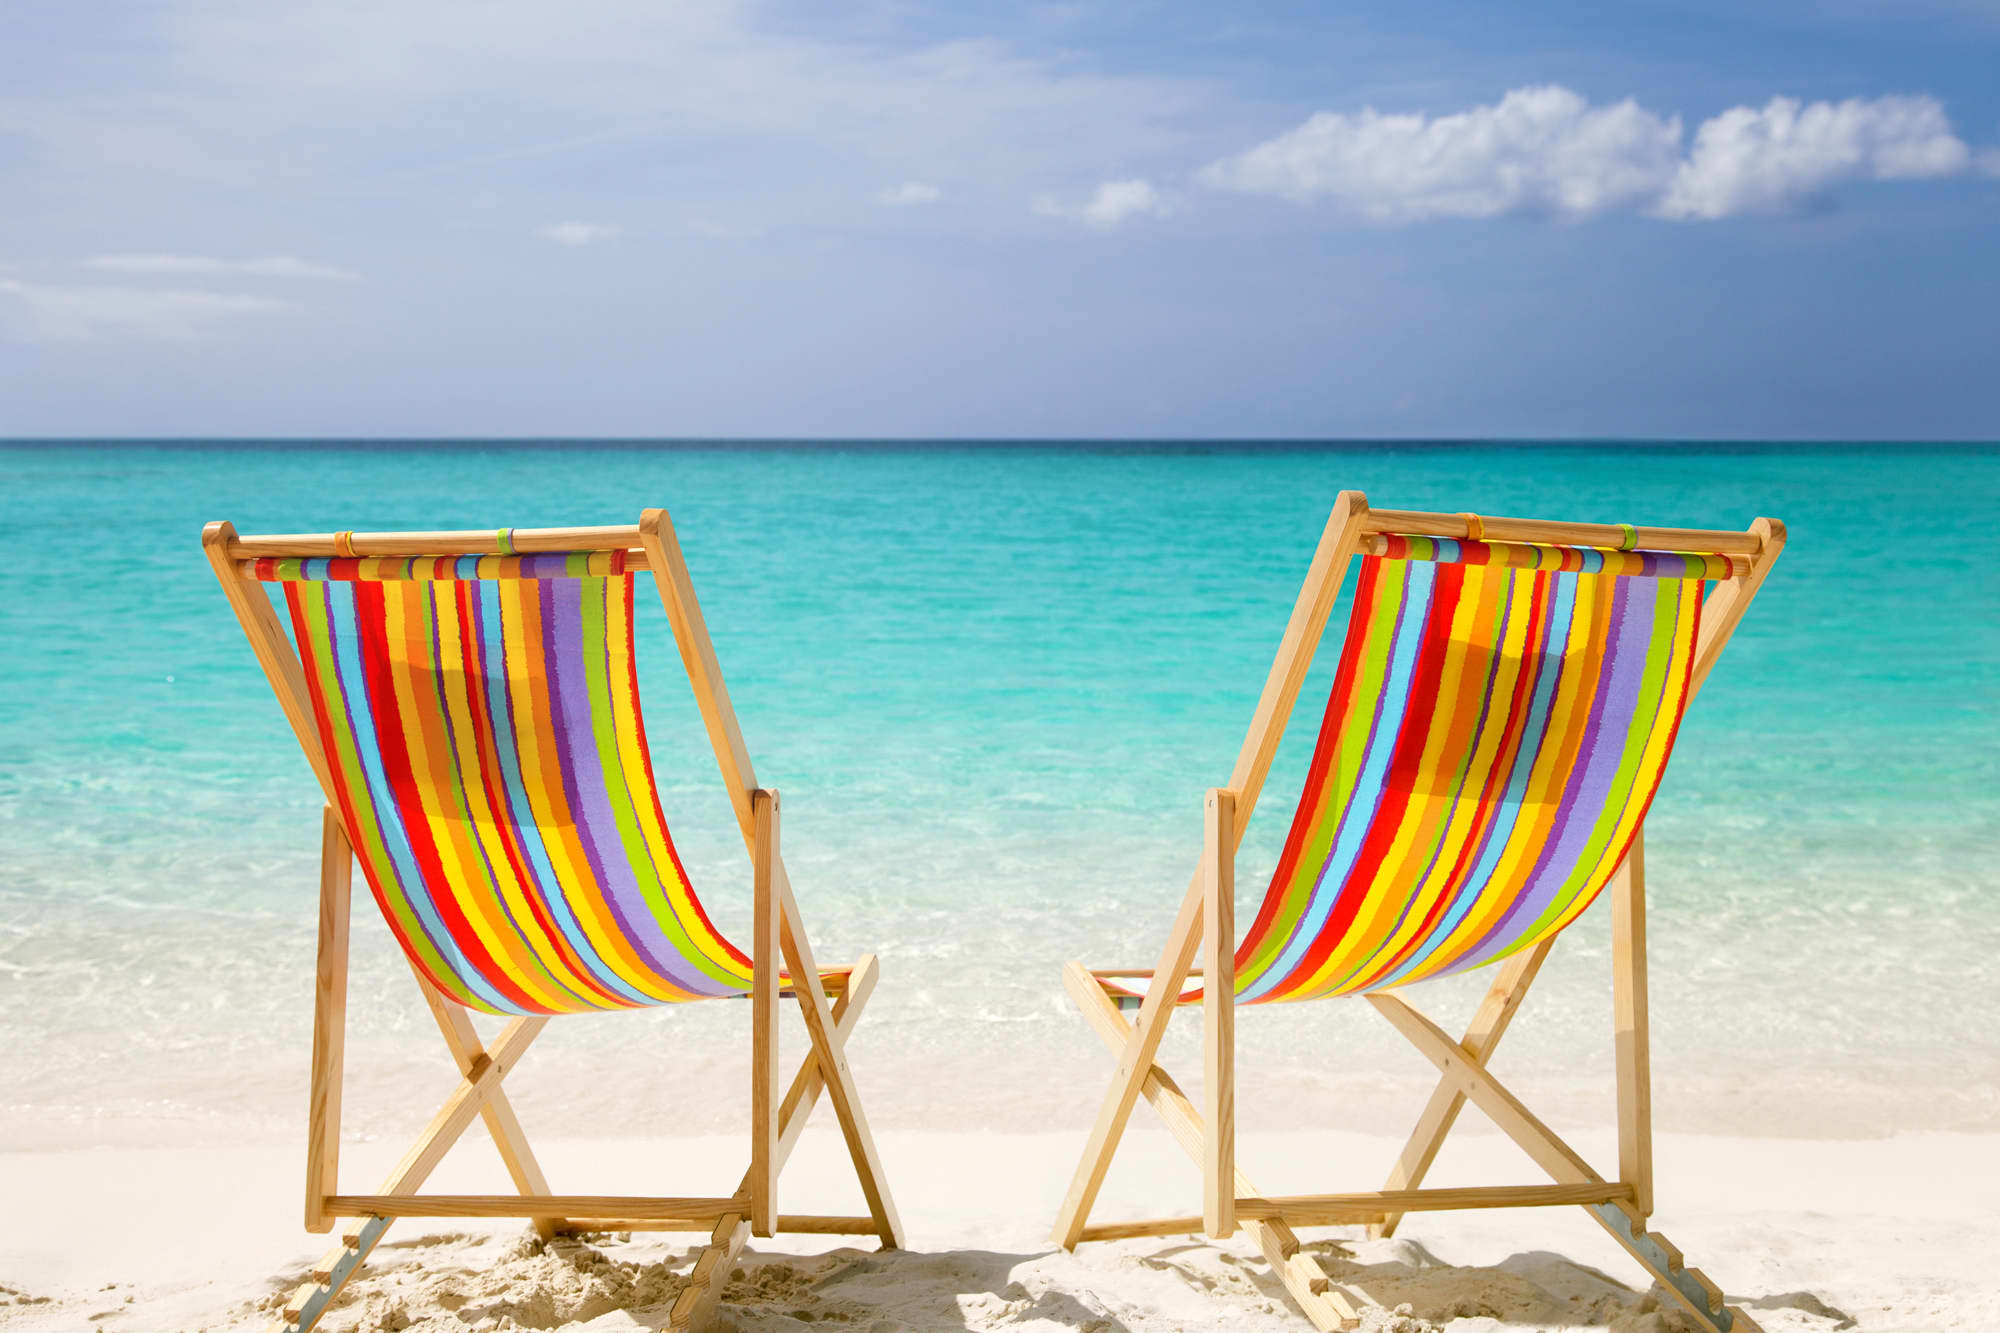 Unused vacation days at 40-year high